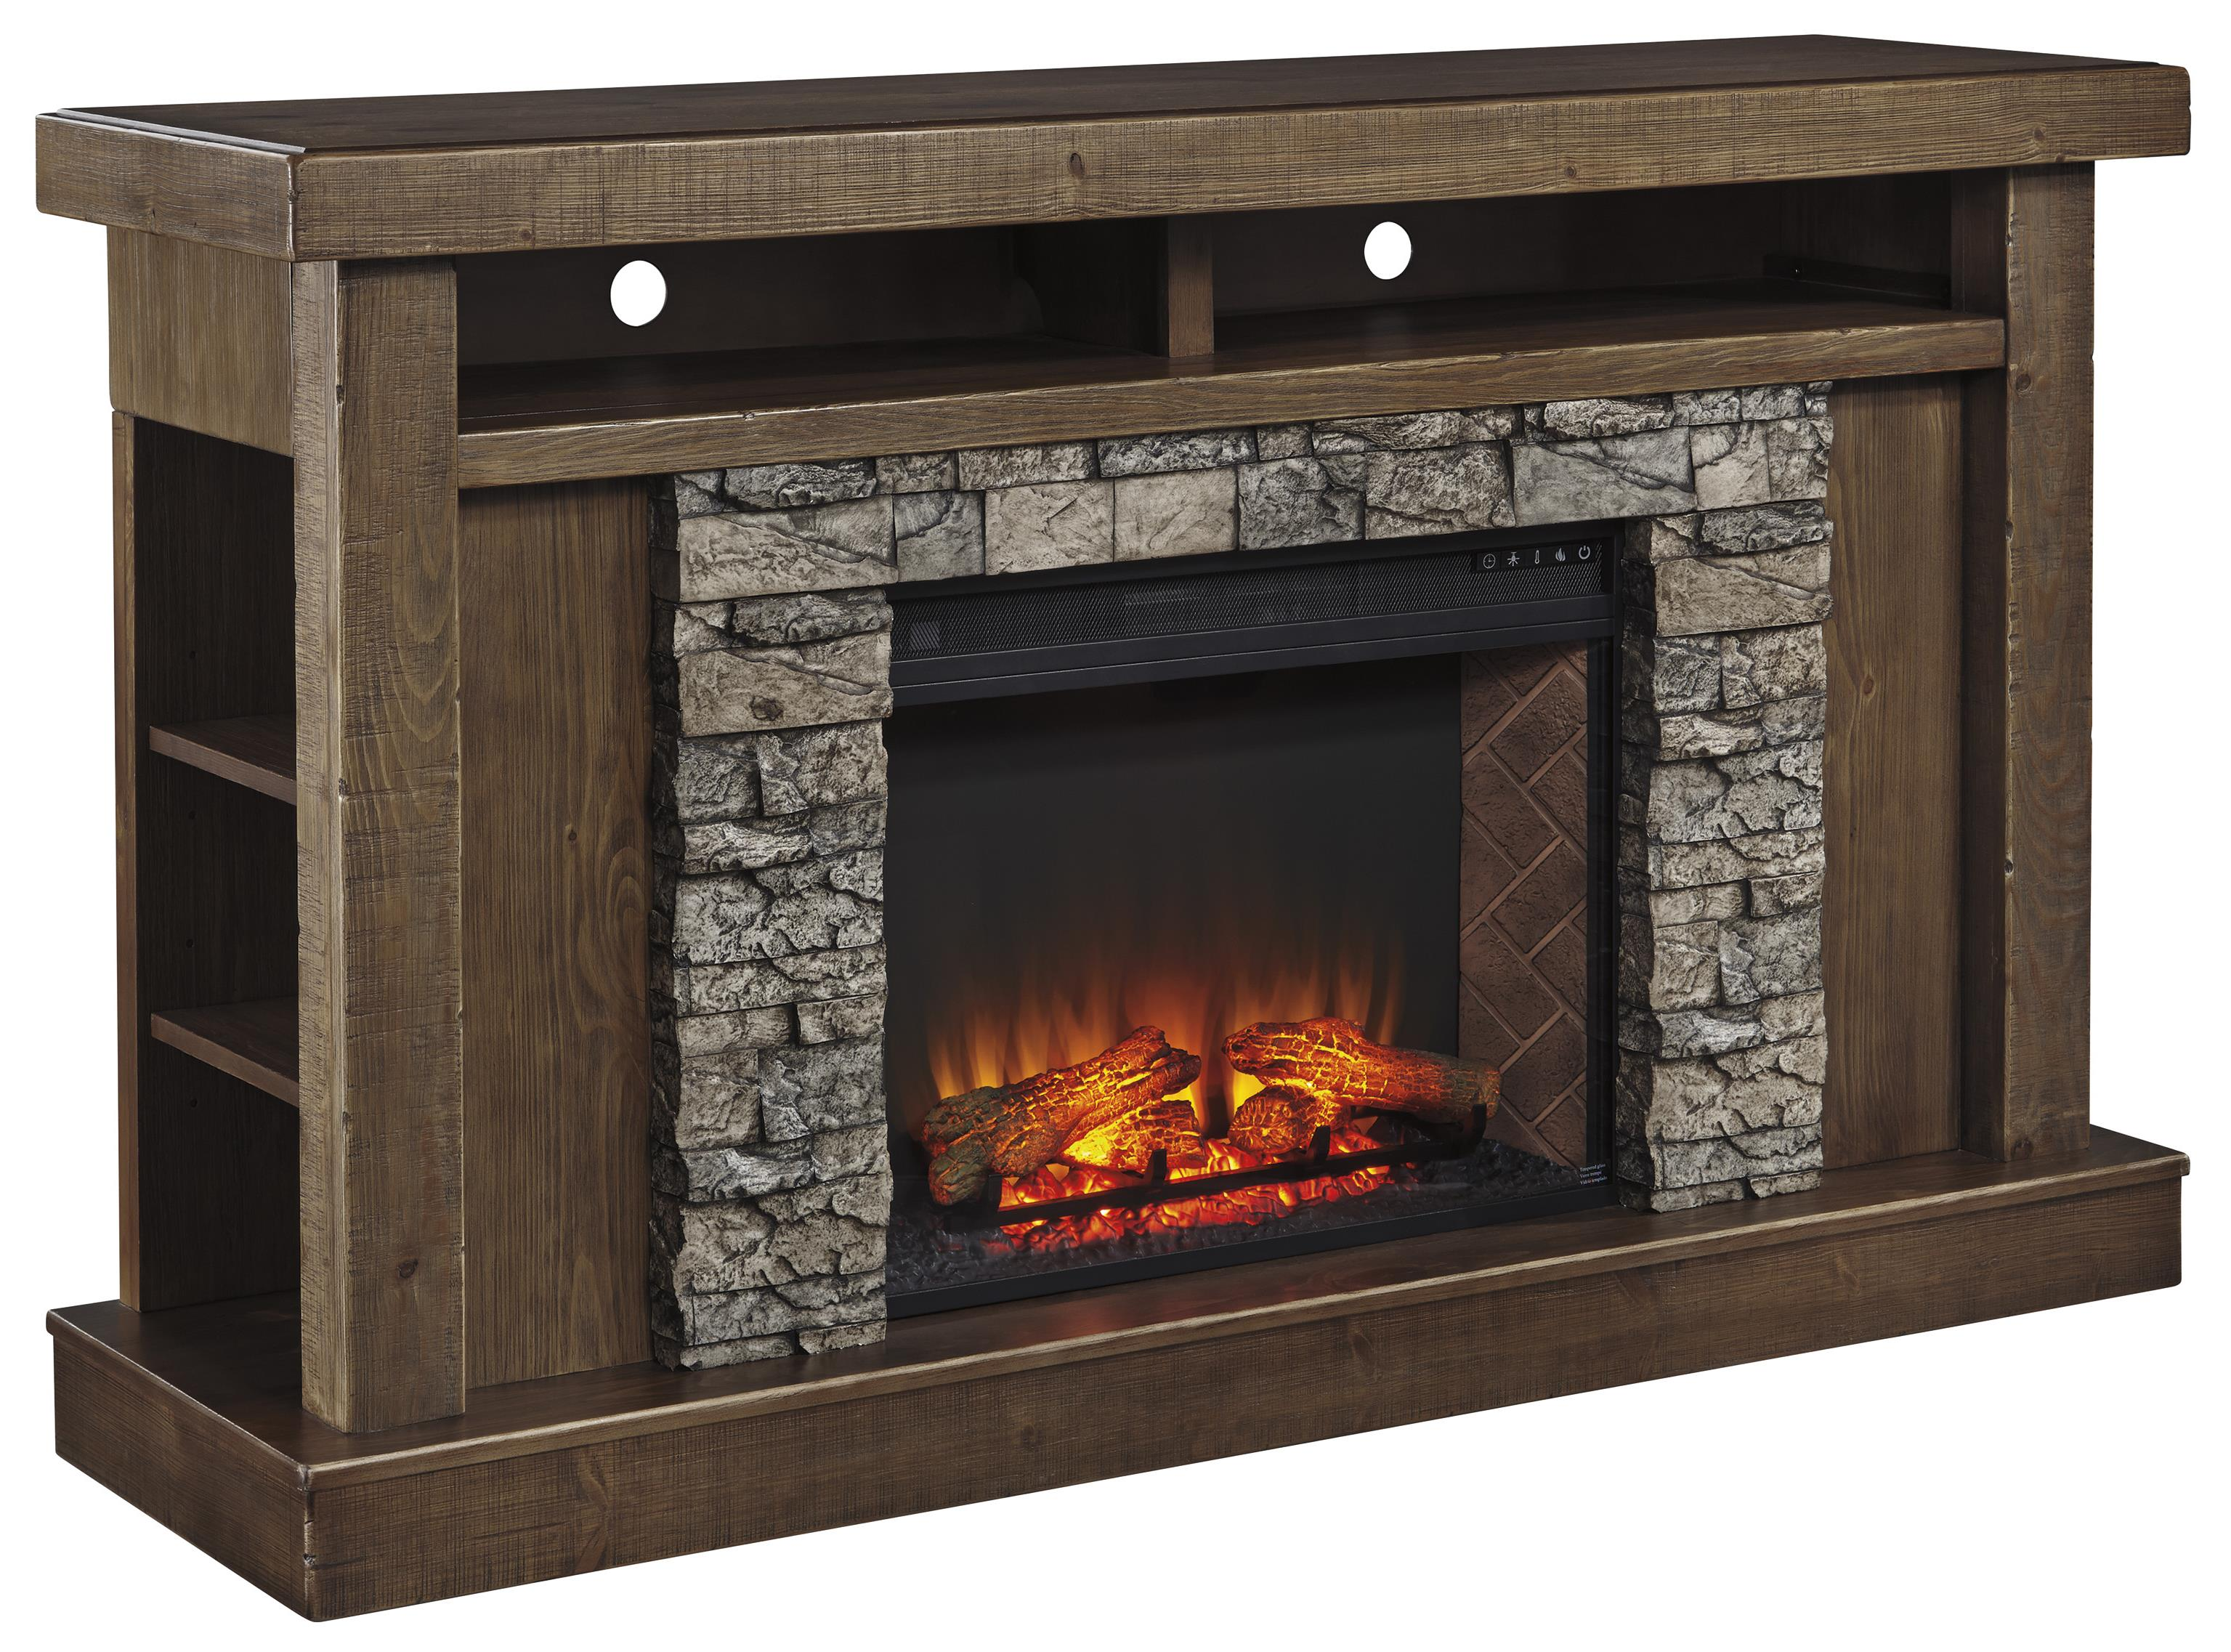 Signature Design by Ashley Tamilo Fireplace Surround with Electric Insert - Item Number: W714-68+W100-21